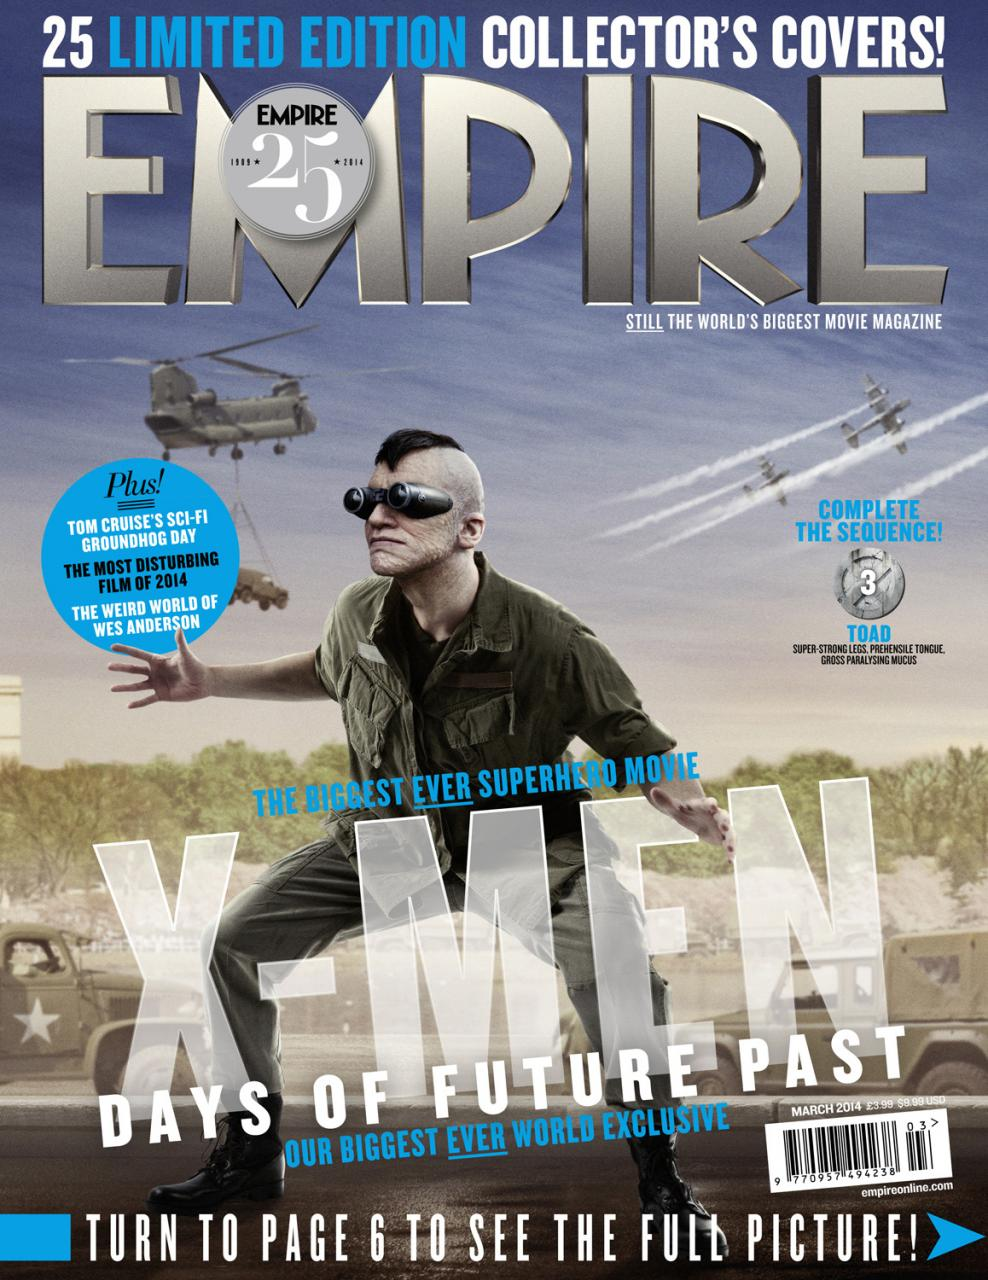 X-MEN DAYS OF FUTURE PAST Character Magazine Covers (8)